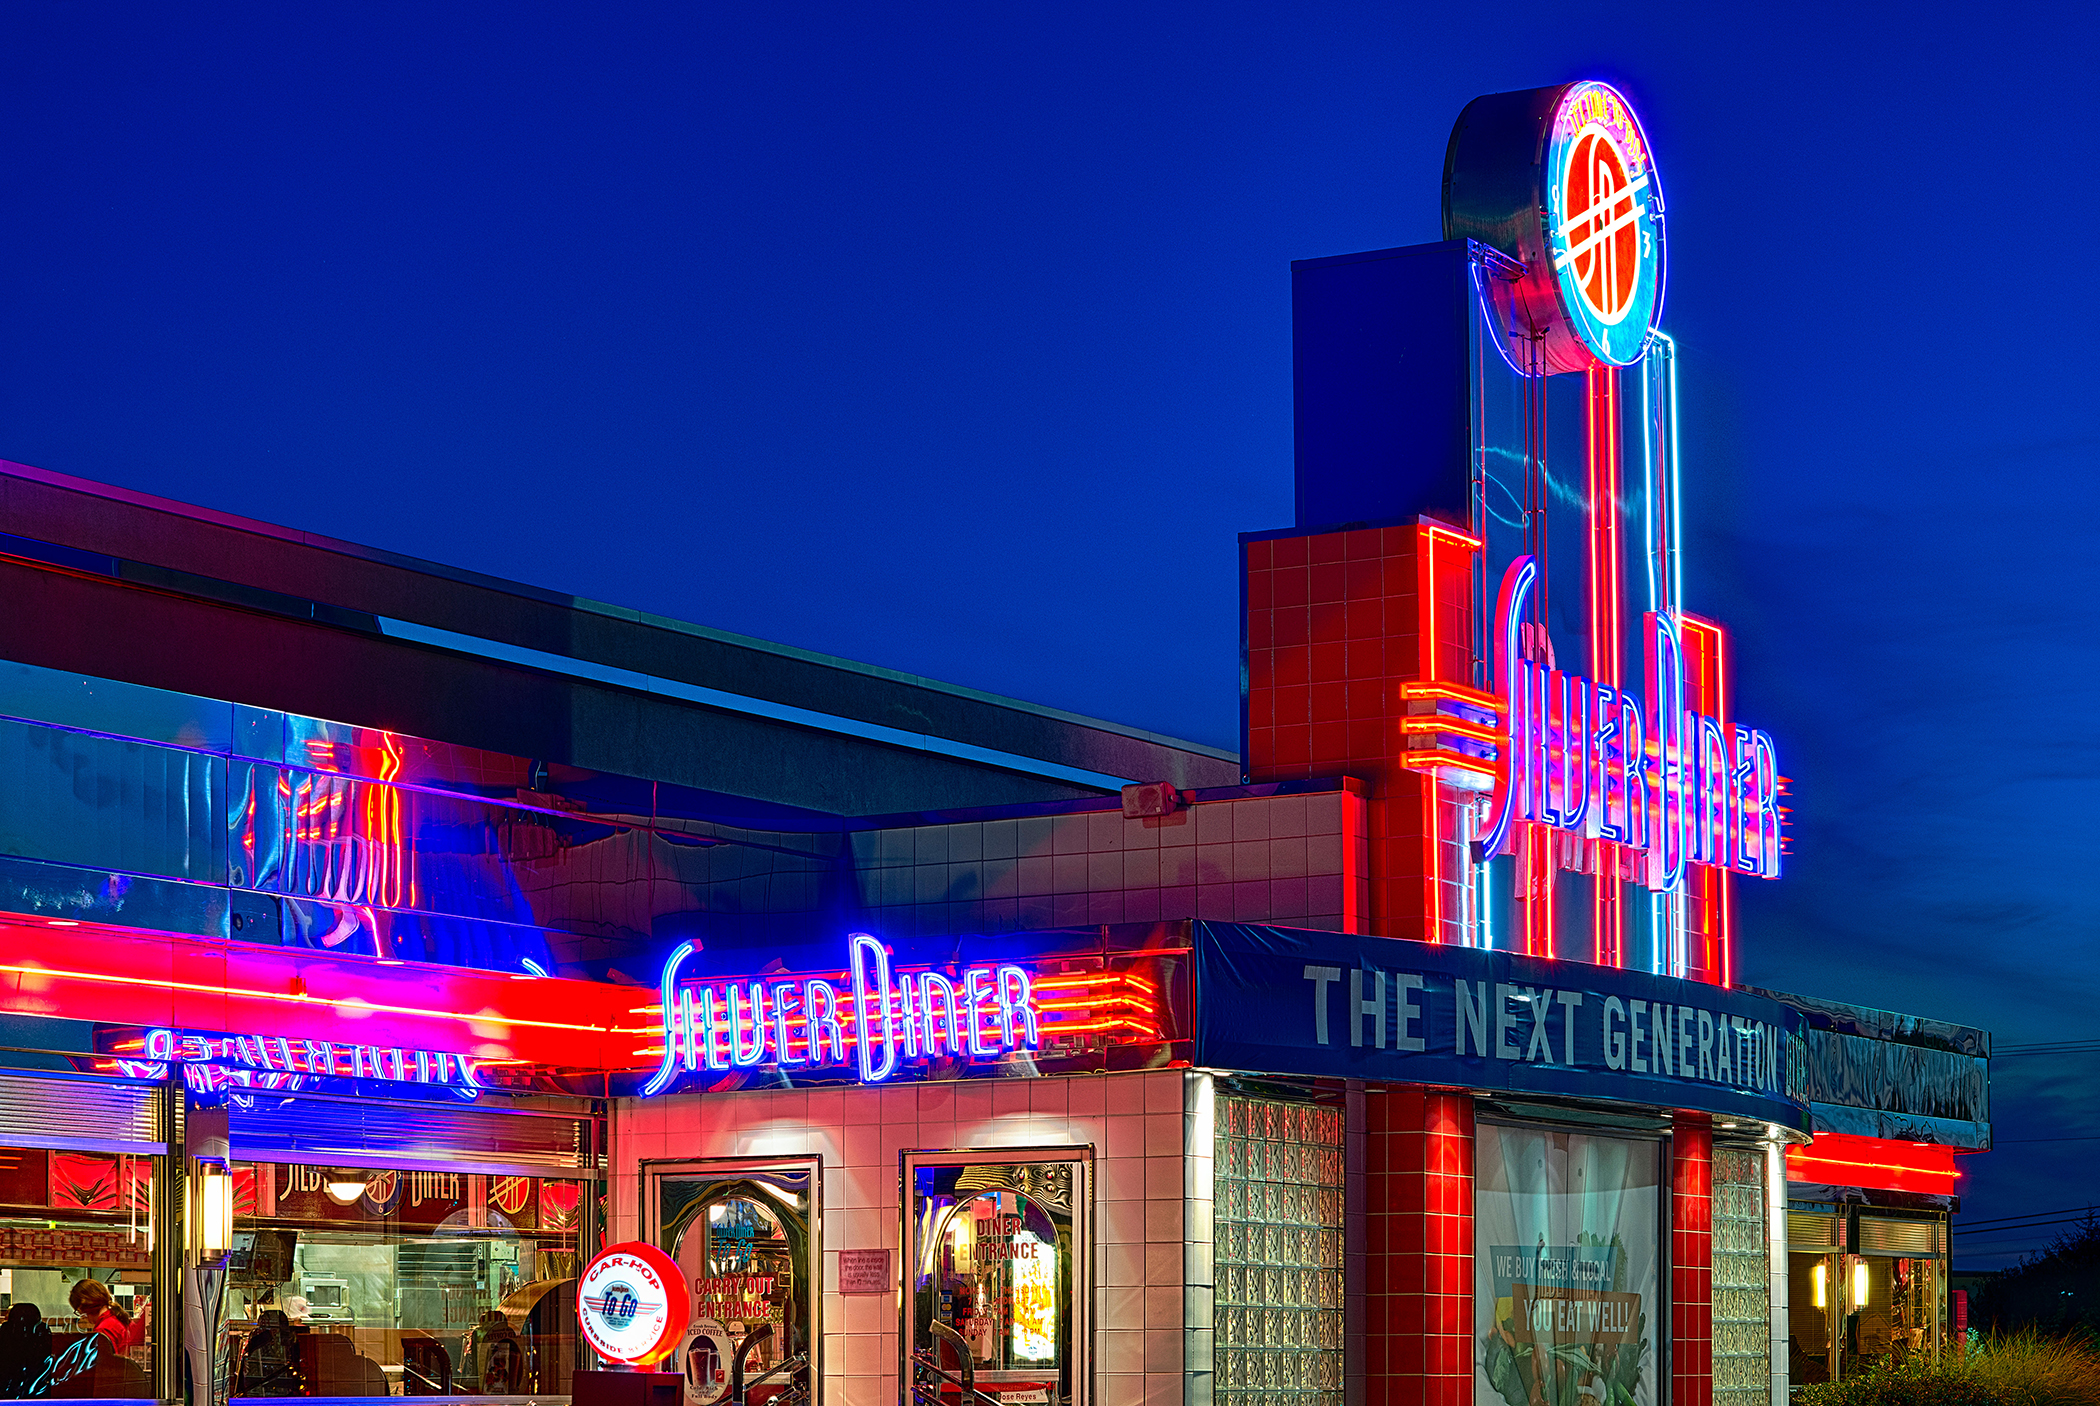 DC1215 Silver Diner restaurant, chain, Cherry Hill, New Jersey, USA